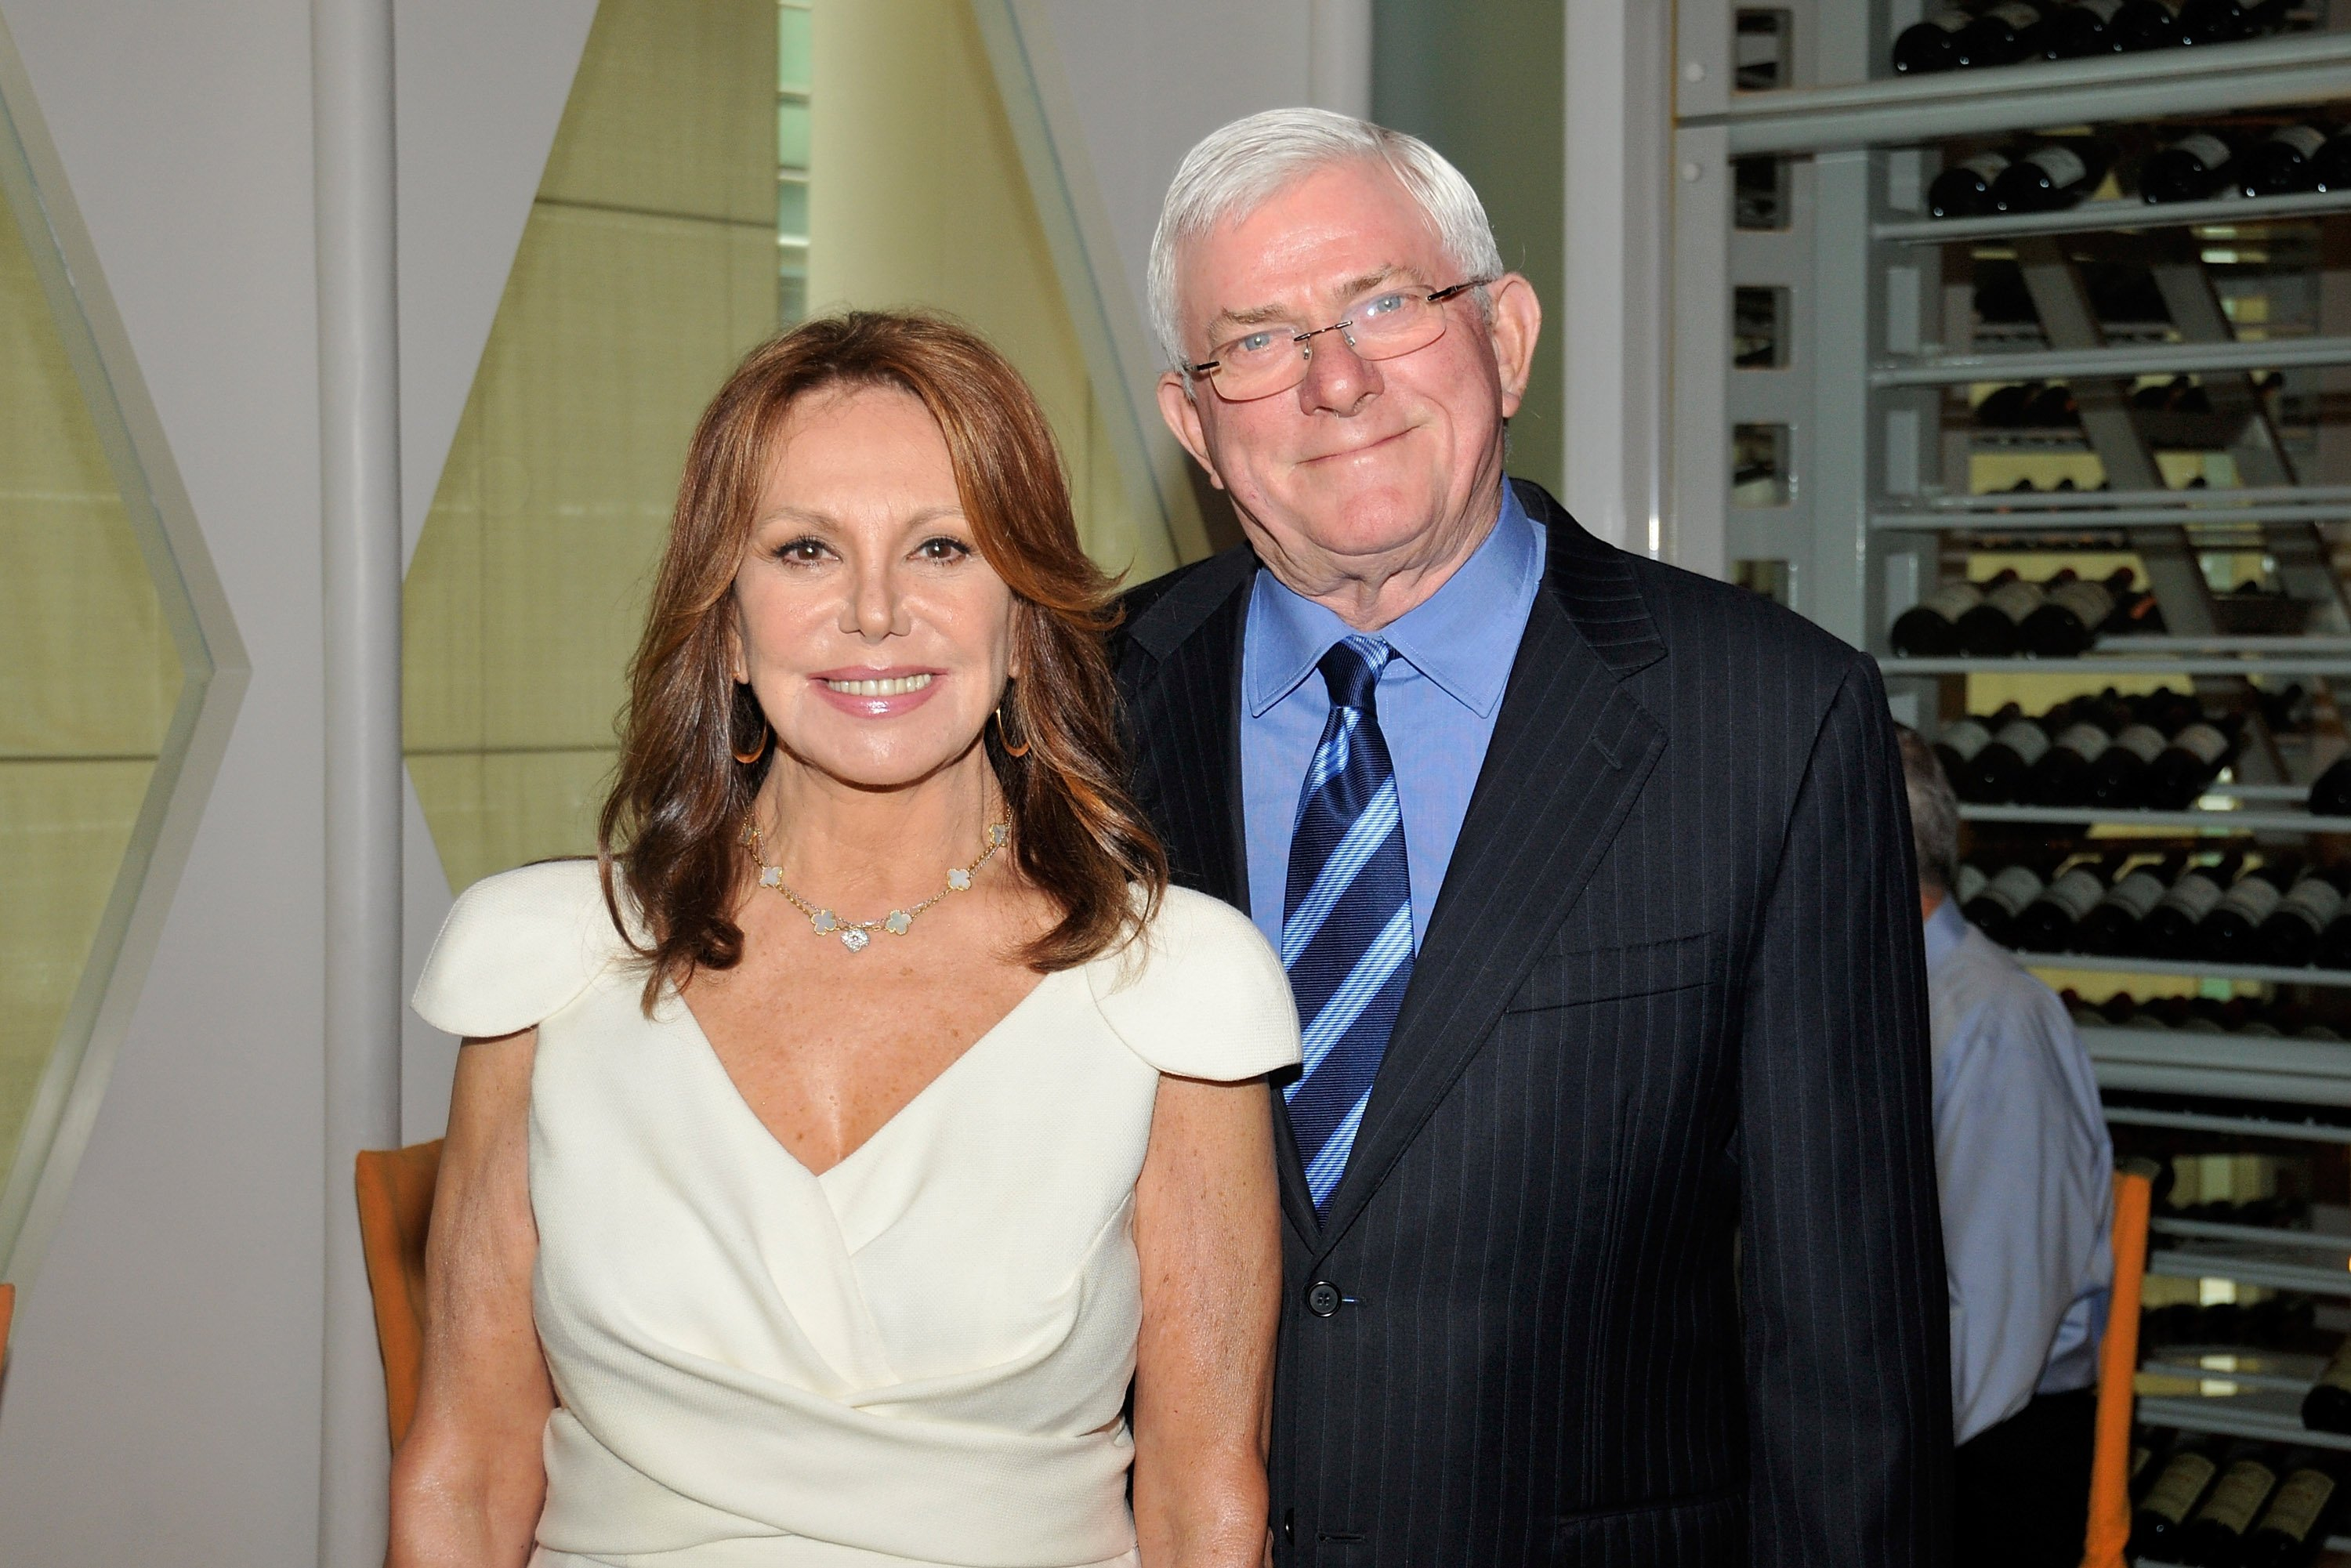 Marlo Thomas and Phil Donahue attend the 2011 Jefferson Awards for Public Service at Le Cirque on June 22, 2011 | Photo: GettyImages